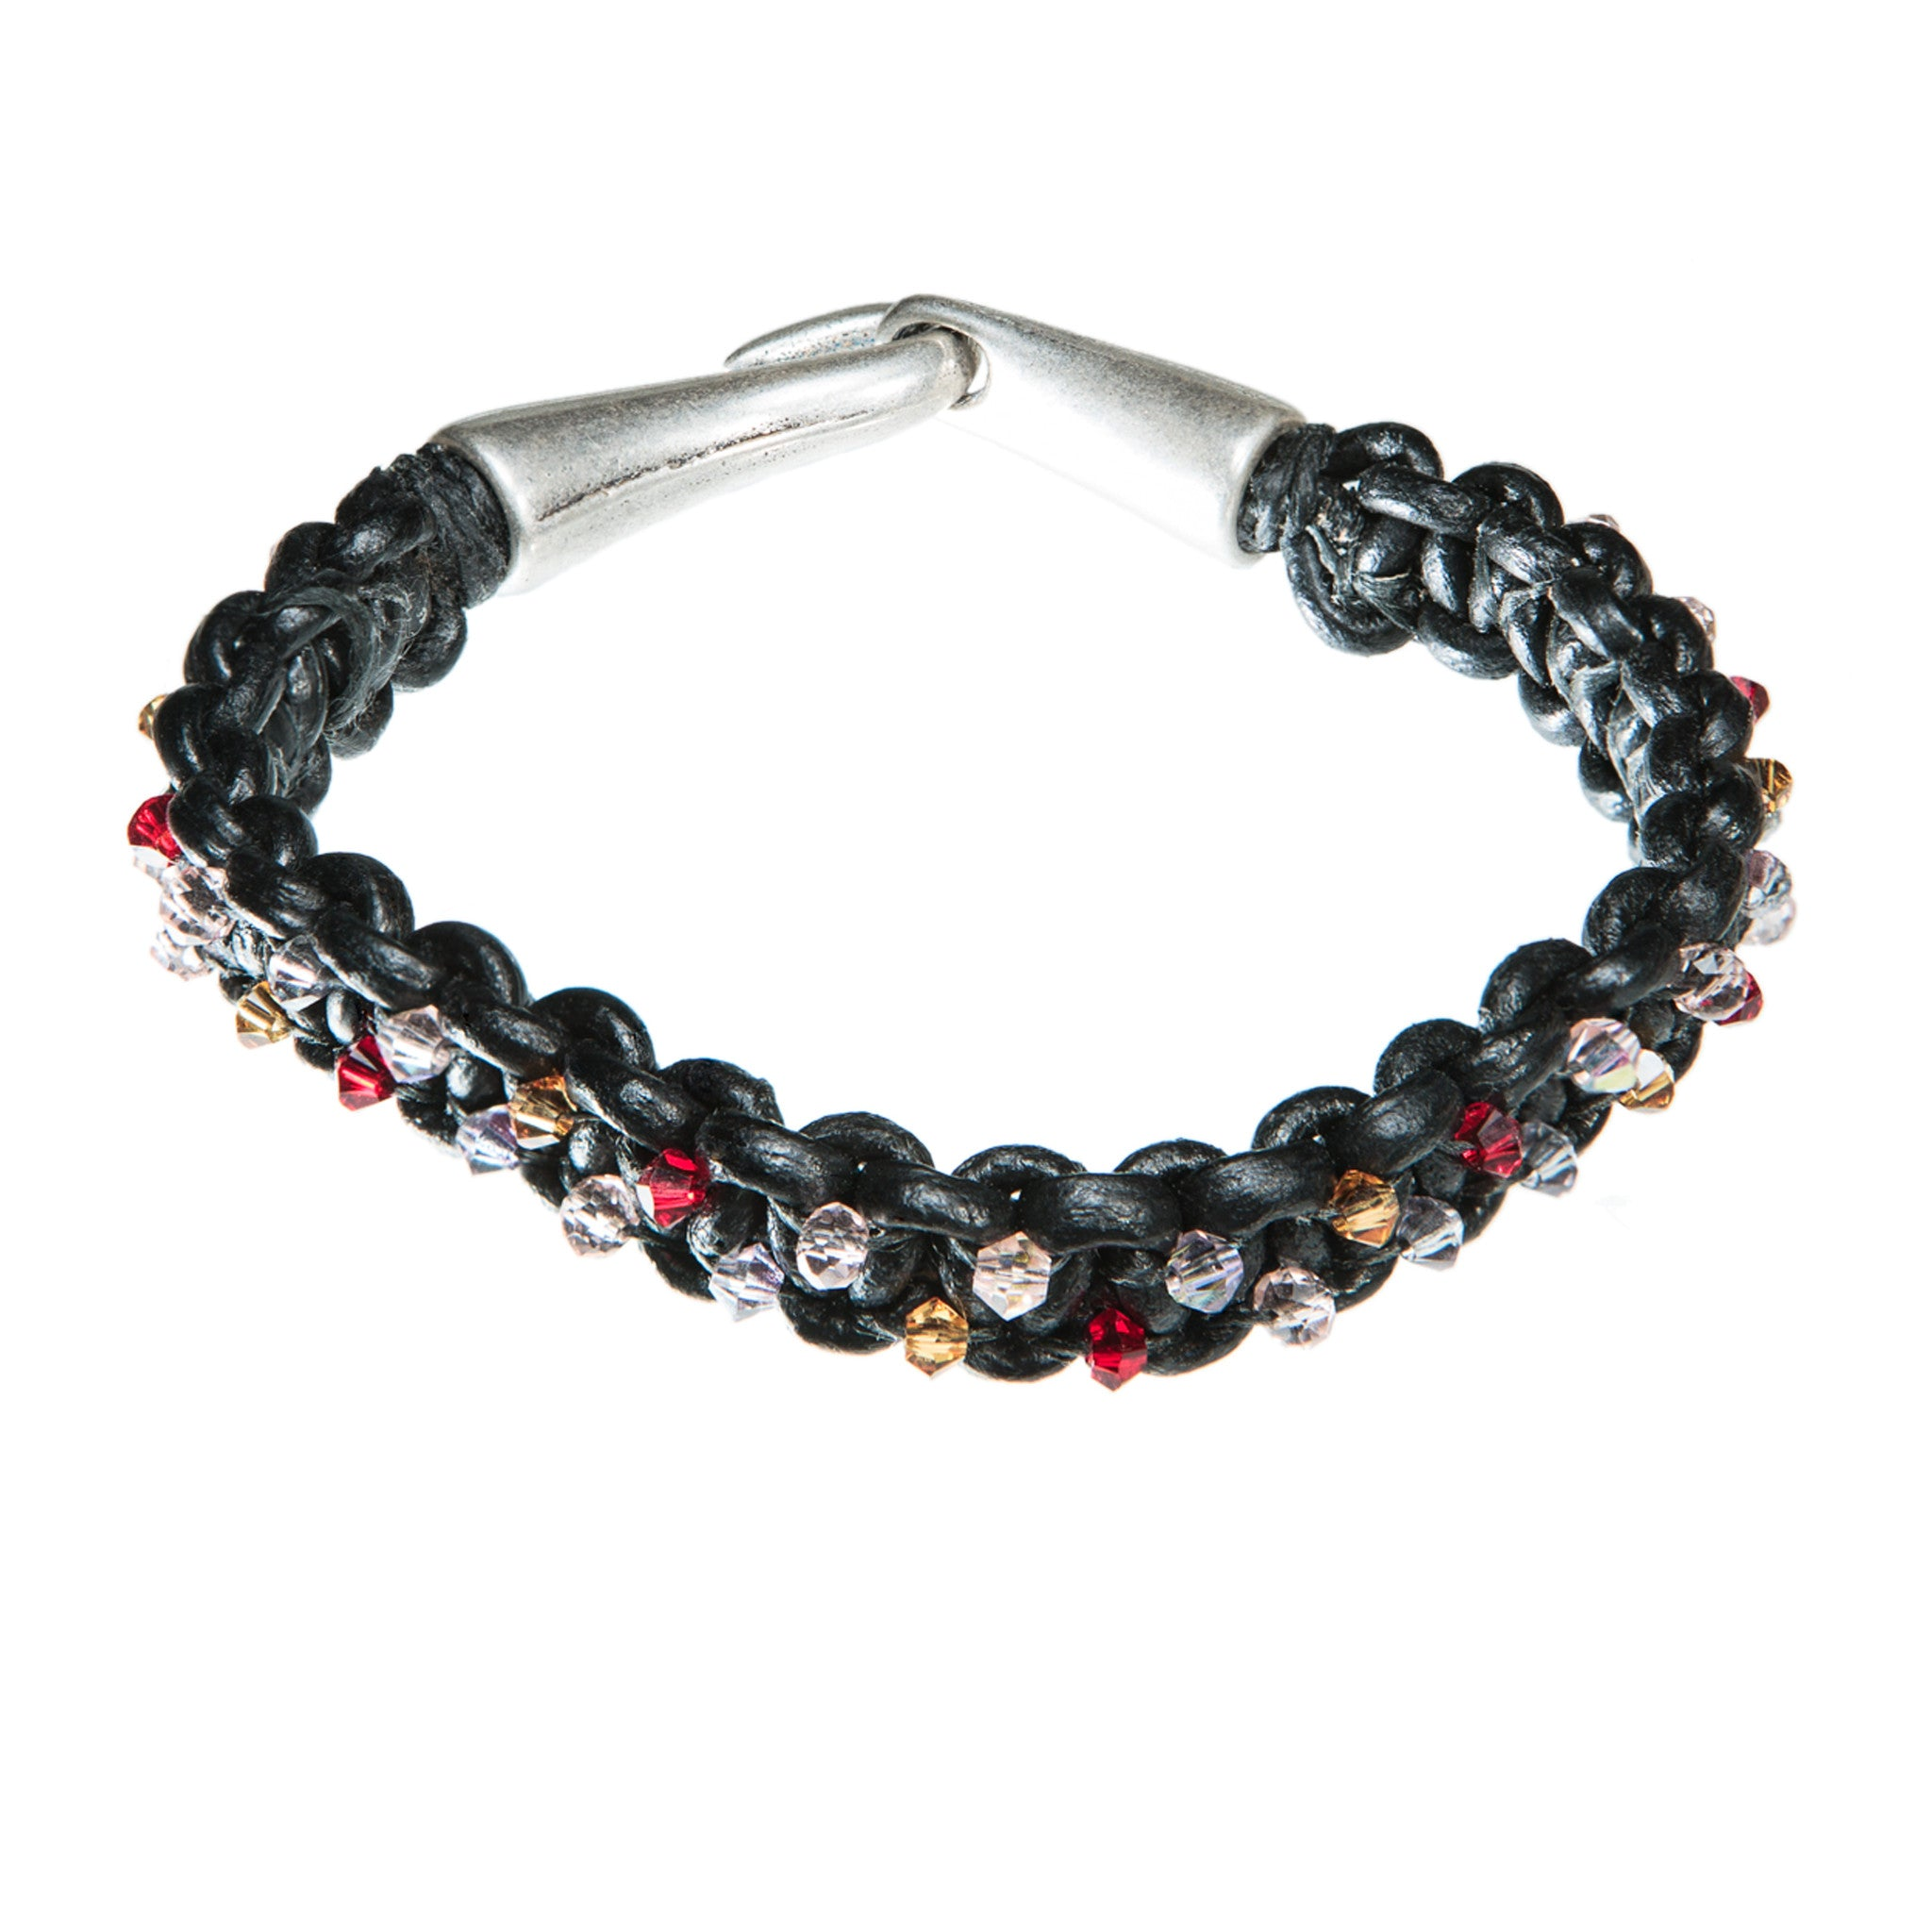 5a95be44b980 Black leather bracelet with red